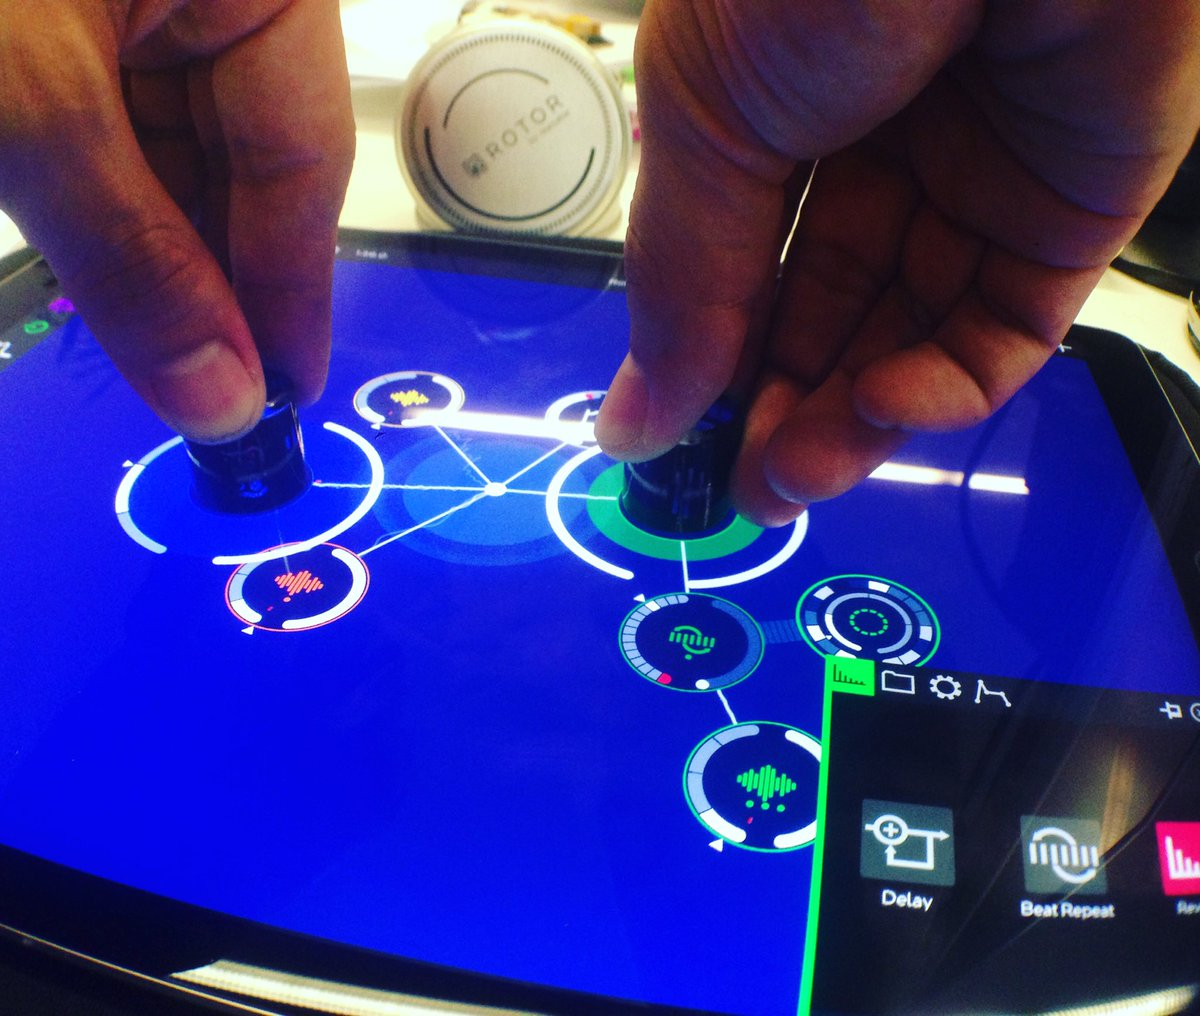 Final test day * Very Soon ROTOR by @reactable #music #electronic #EDM #objects #dj #control #techno #synth #app https://t.co/w7KM8bGJ75